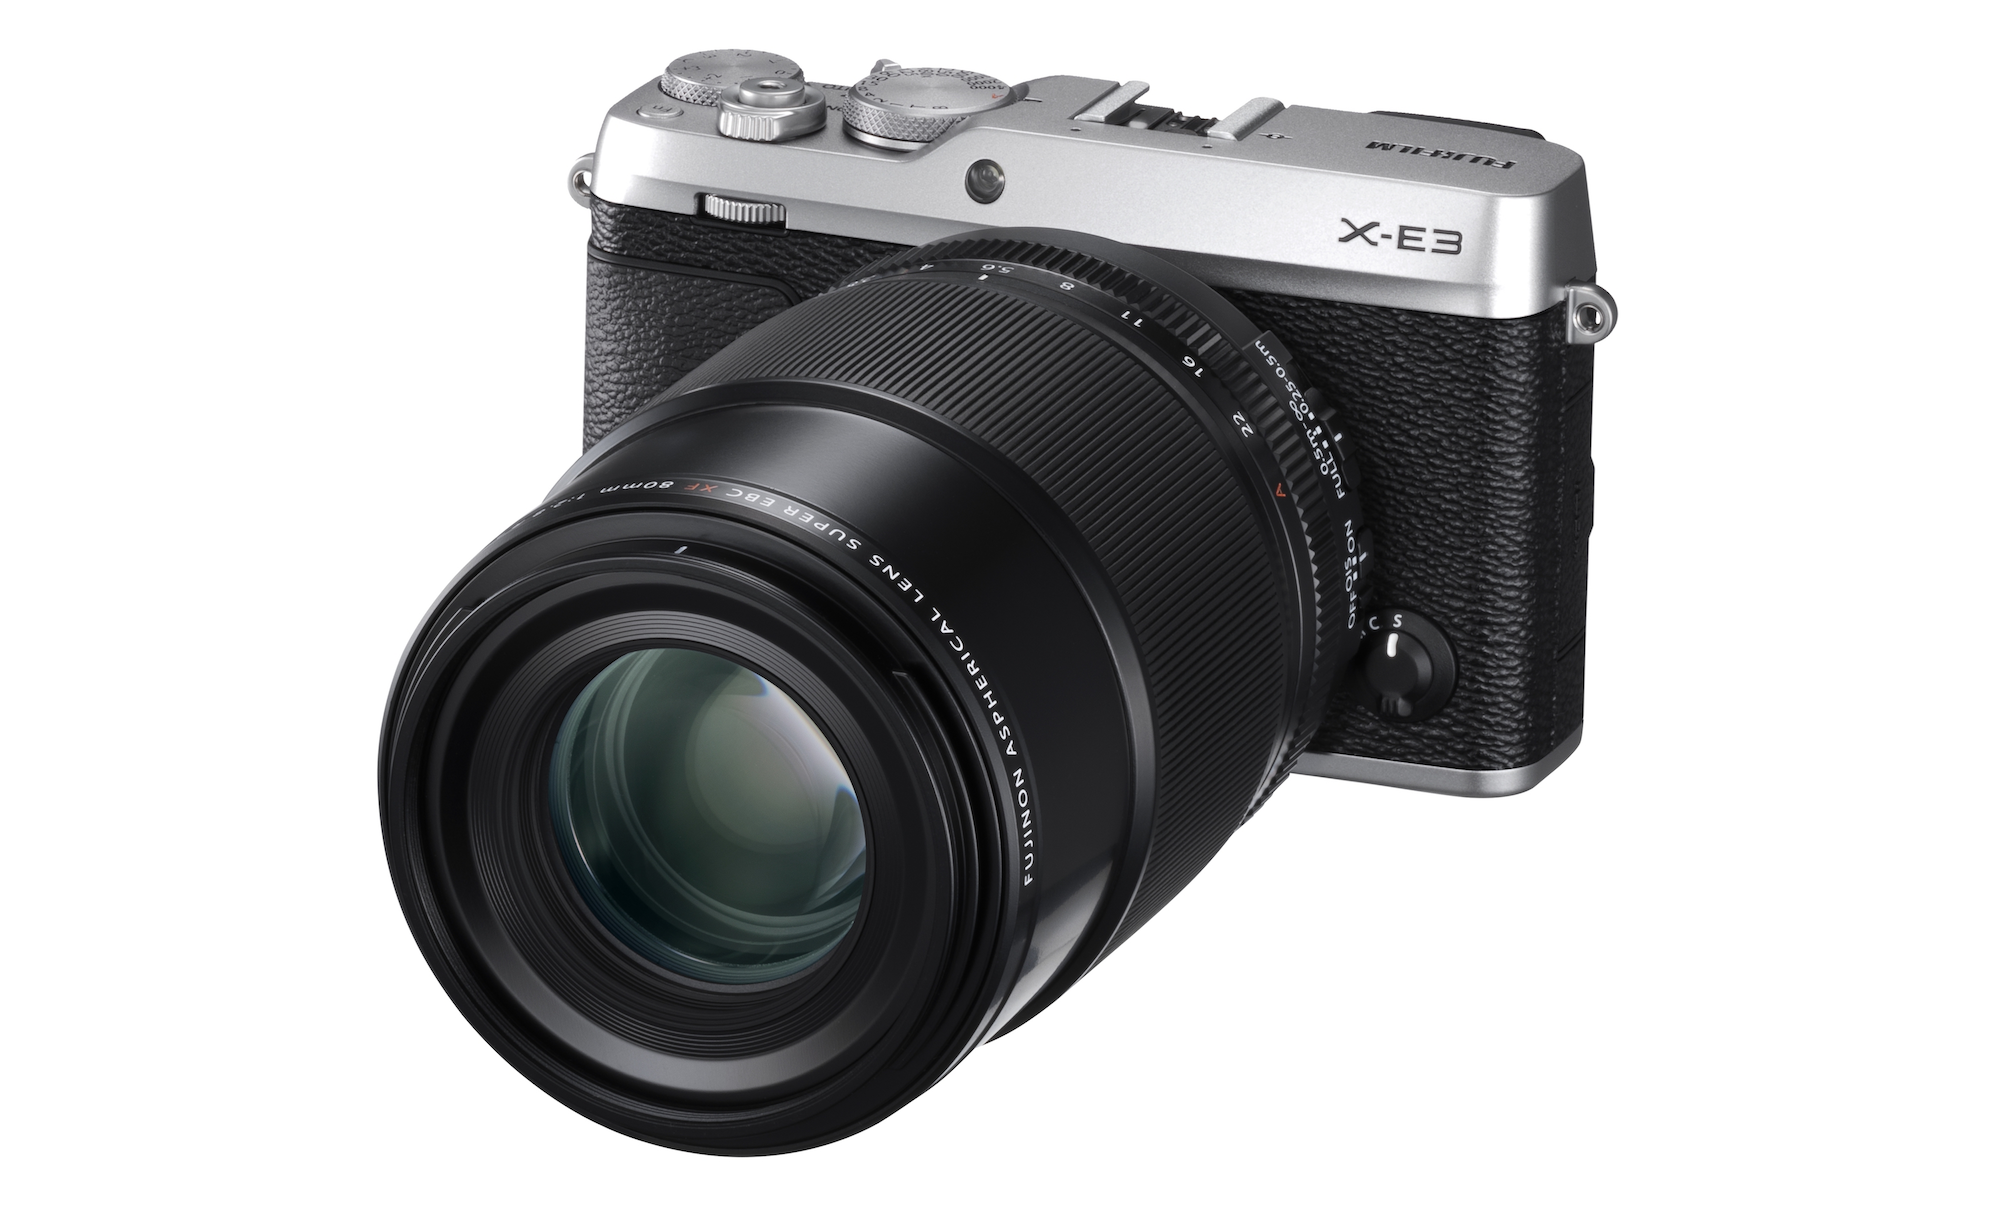 Fujifilm X-E3 Rangefinder Mirrorless Compact Camera Announced